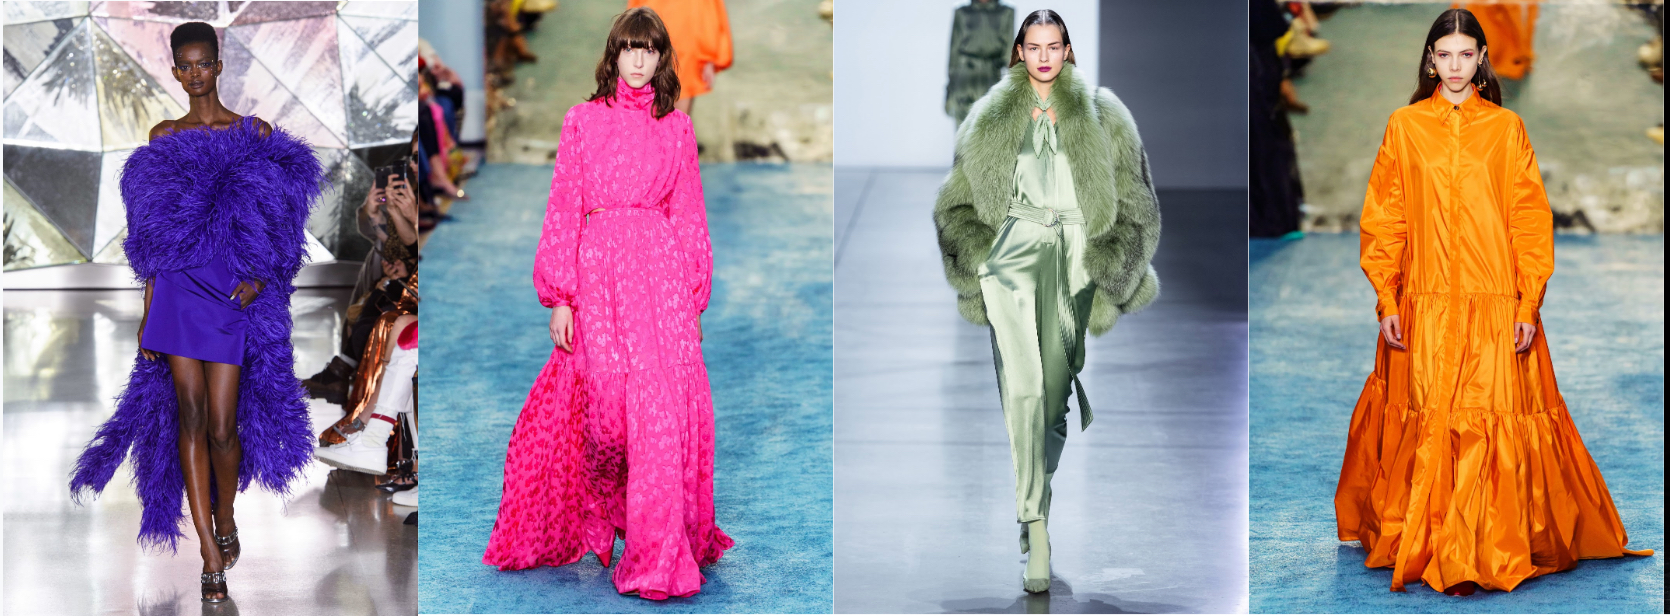 Biggest Trends From New York Fashion Week To Expect For The Fall